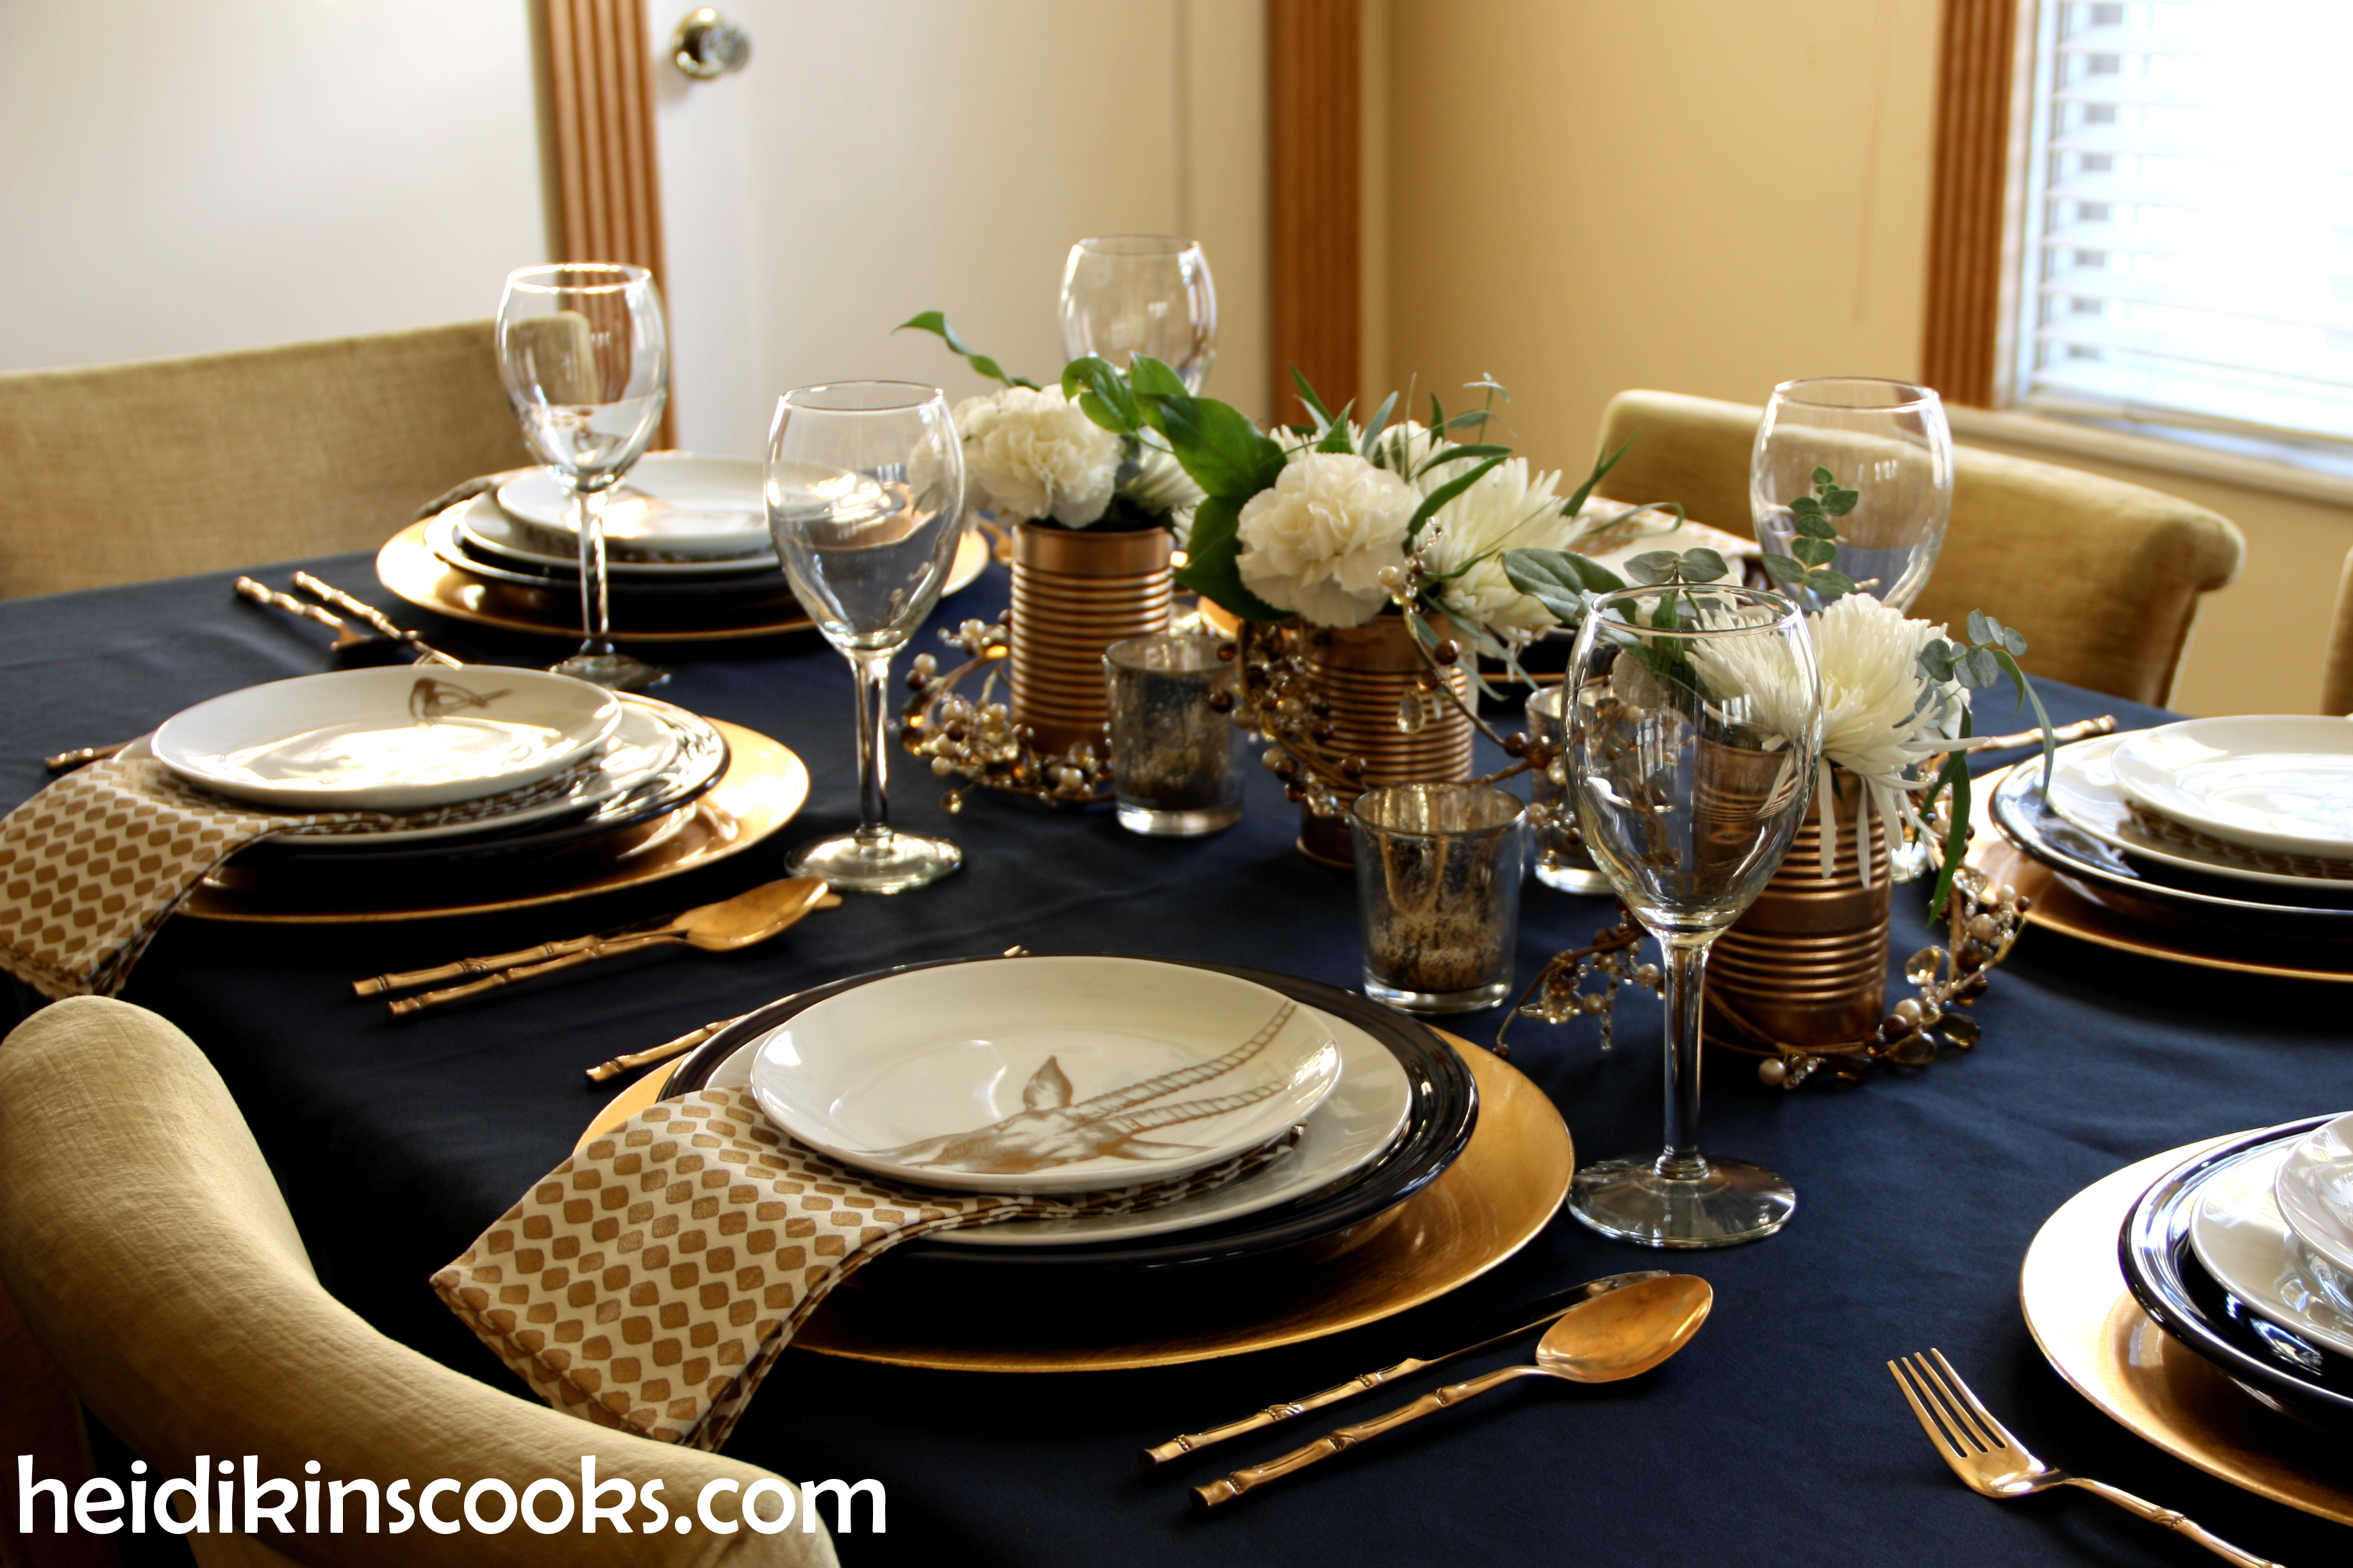 Tablescape Navy Gold_Antler Plates1_heidikinscooks_Jan 2014 & Table setting with gold and navy. And antlers.   heidikins cooks